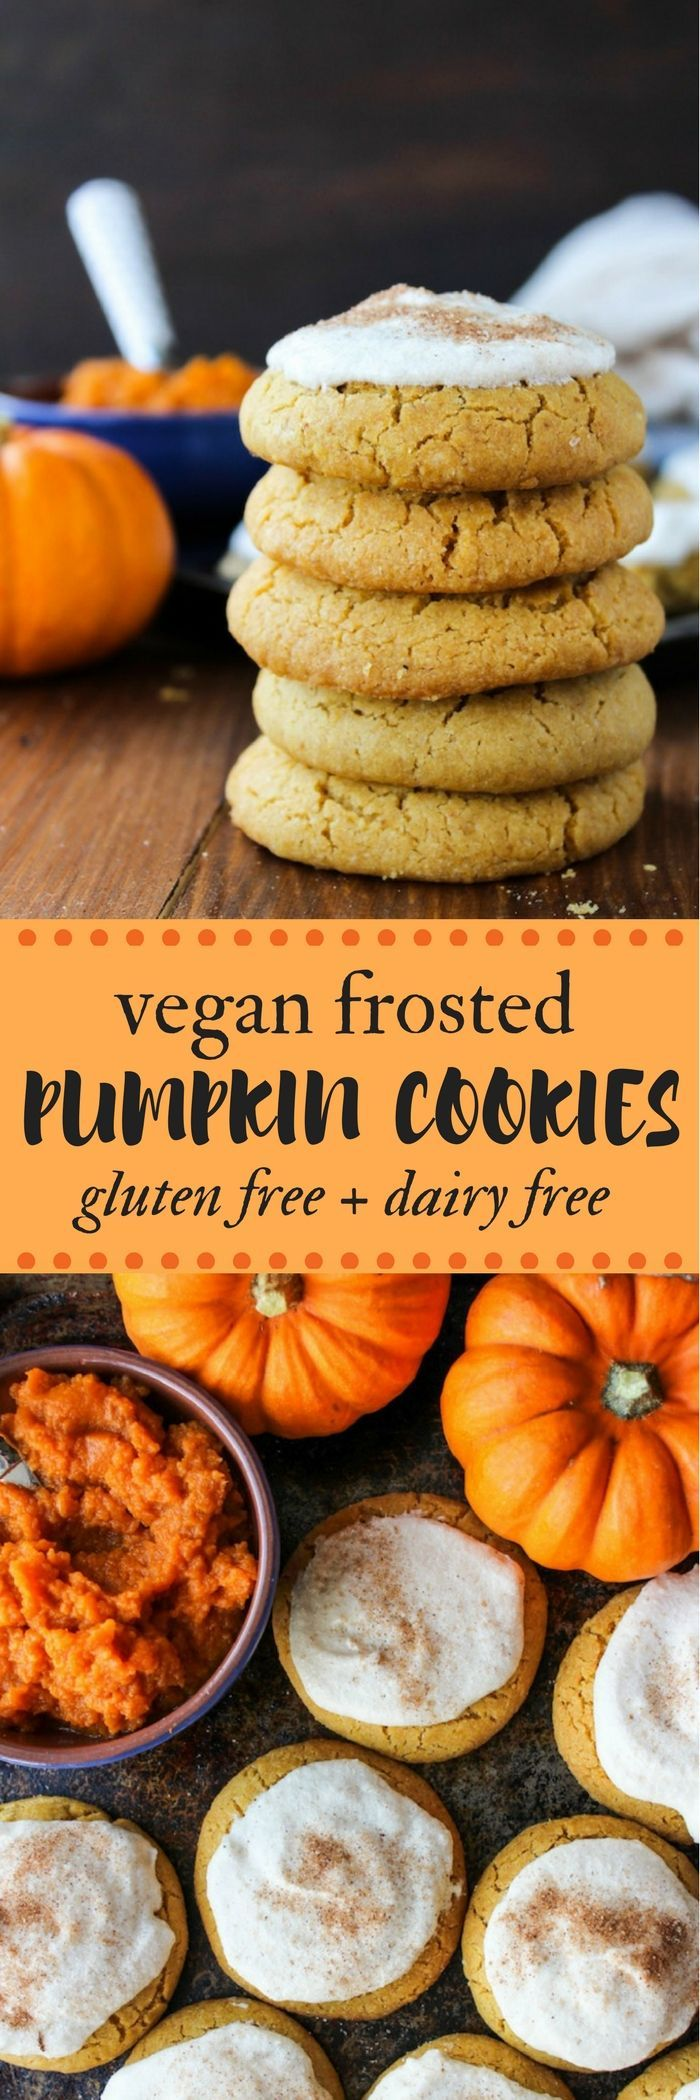 Simple frosted vegan pumpkin cookies: made with one bowl in under an hour | Gluten Free + Dairy Free